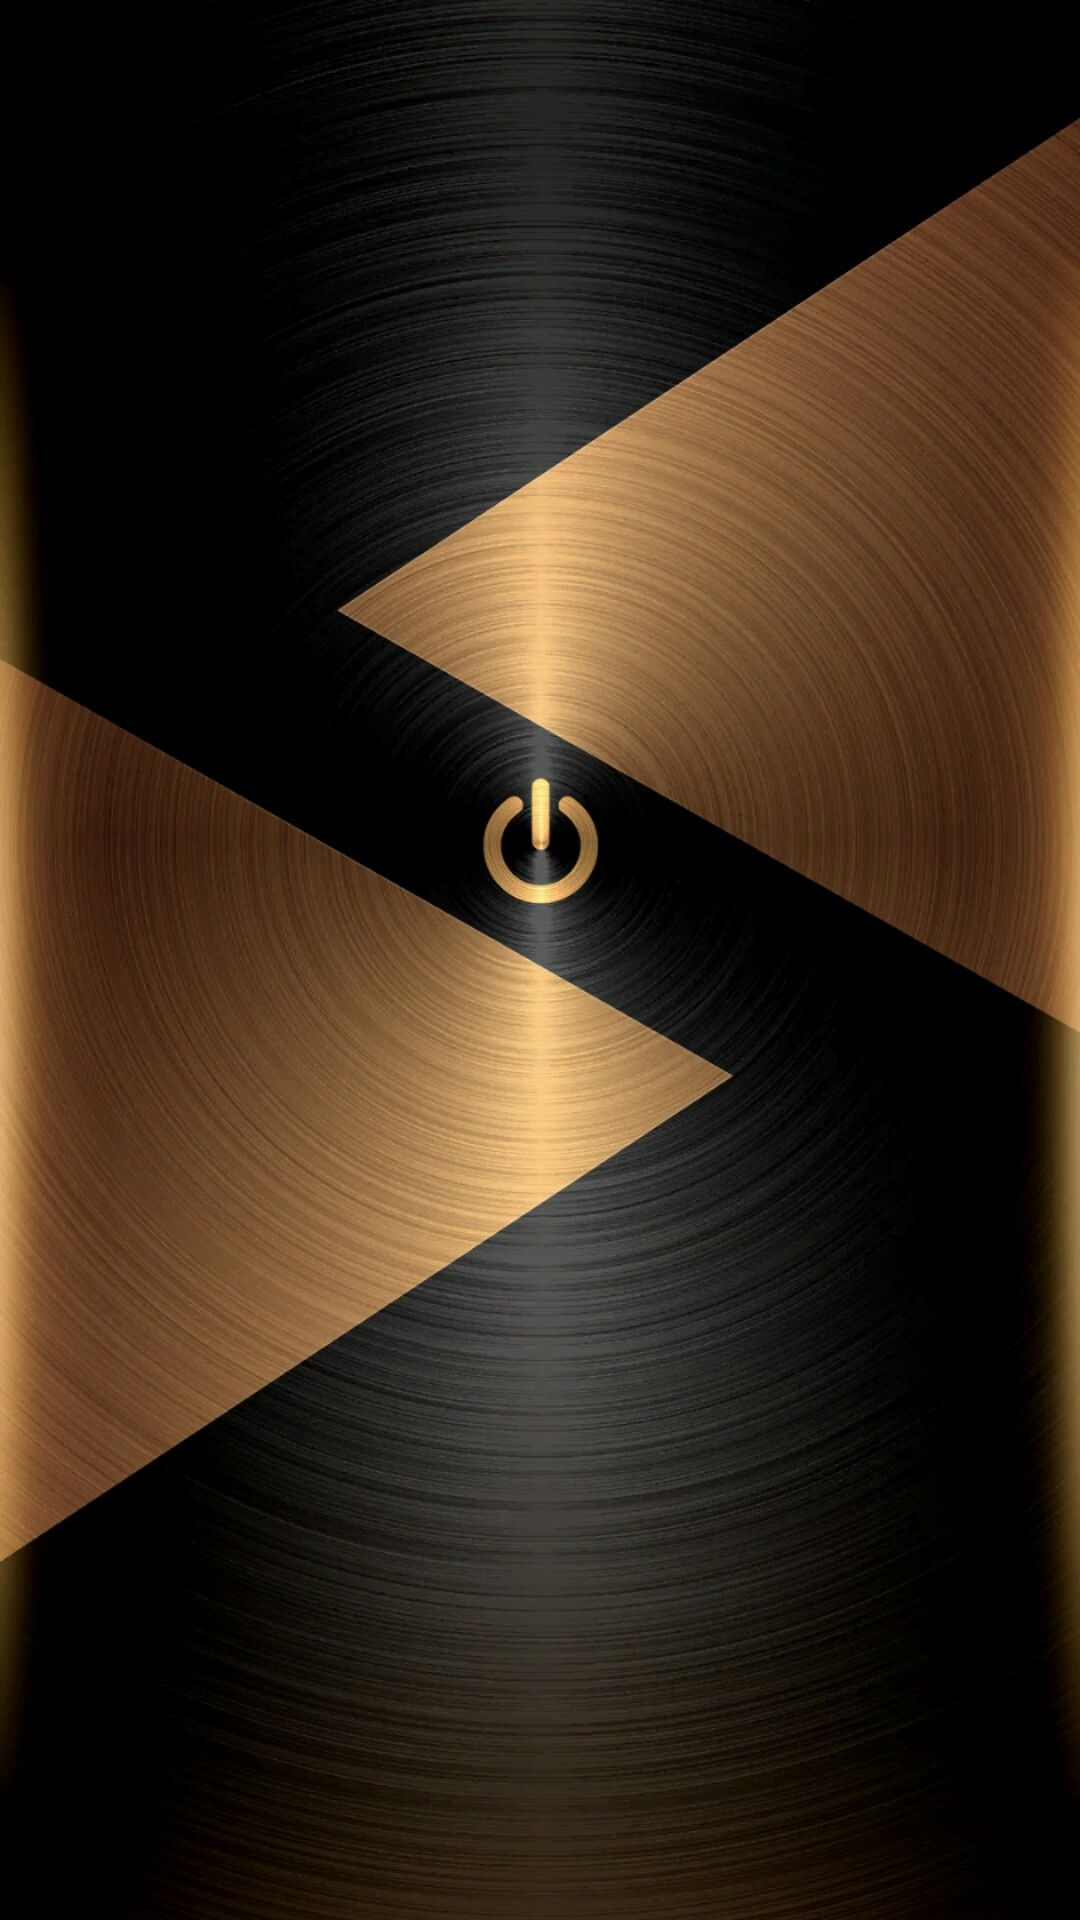 Black And Gold Wallpaper Wallpaper Ponsel Latar Belakang Gambar